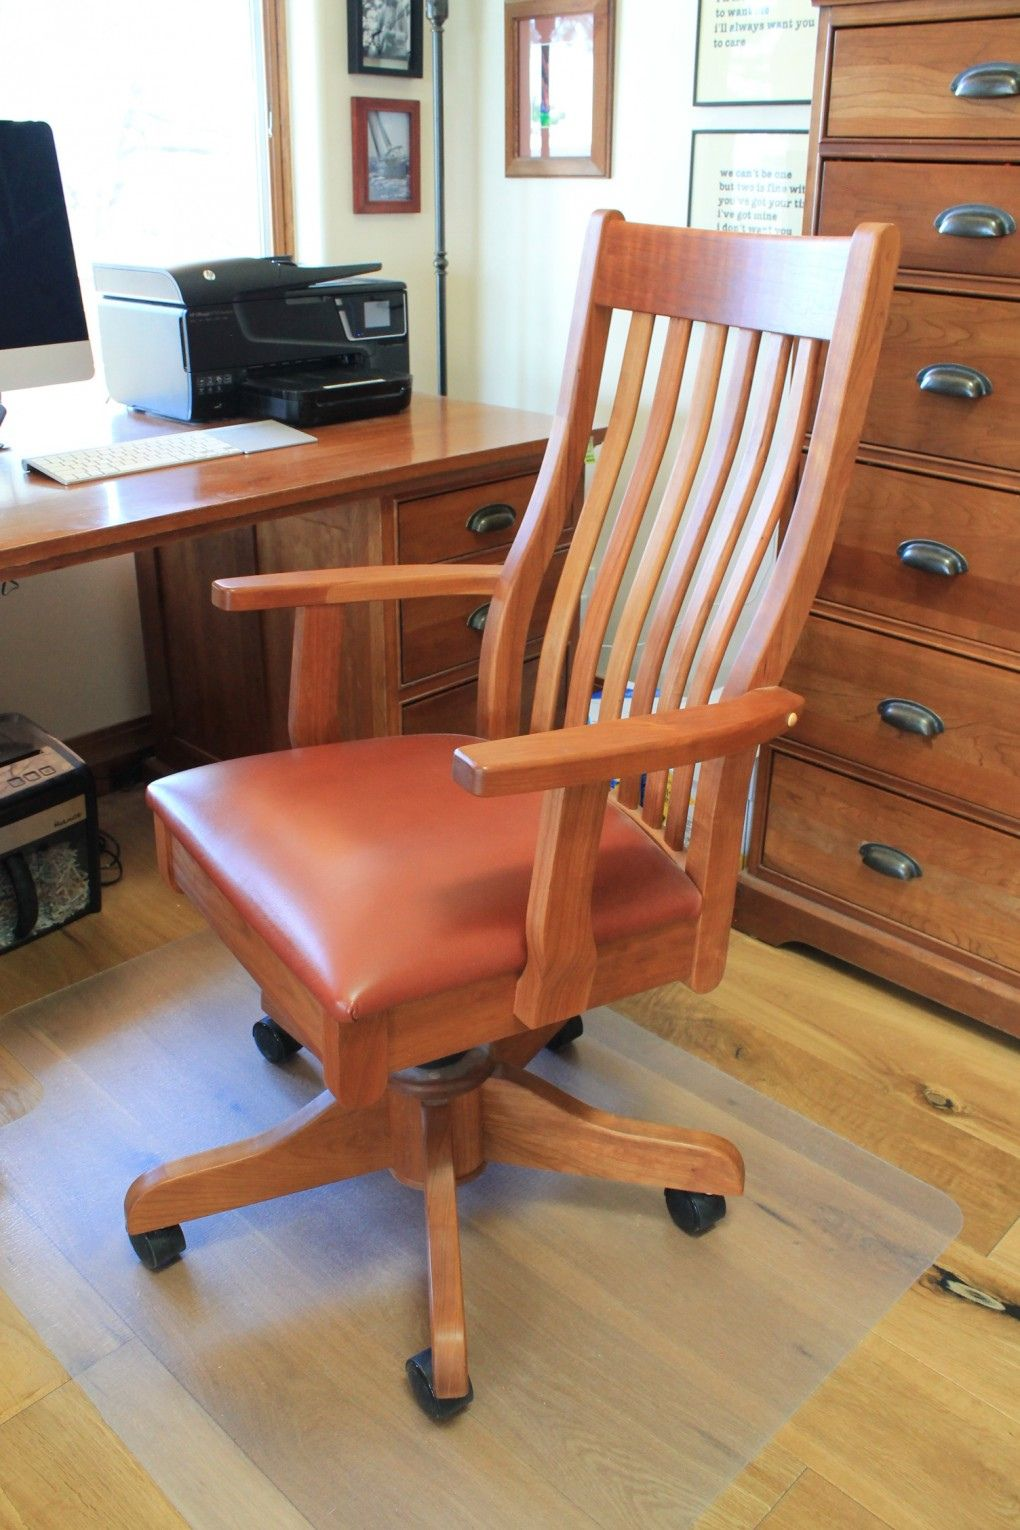 Cherry Wood Desk Chair   Space Saving Desk Ideas Check More At Http://